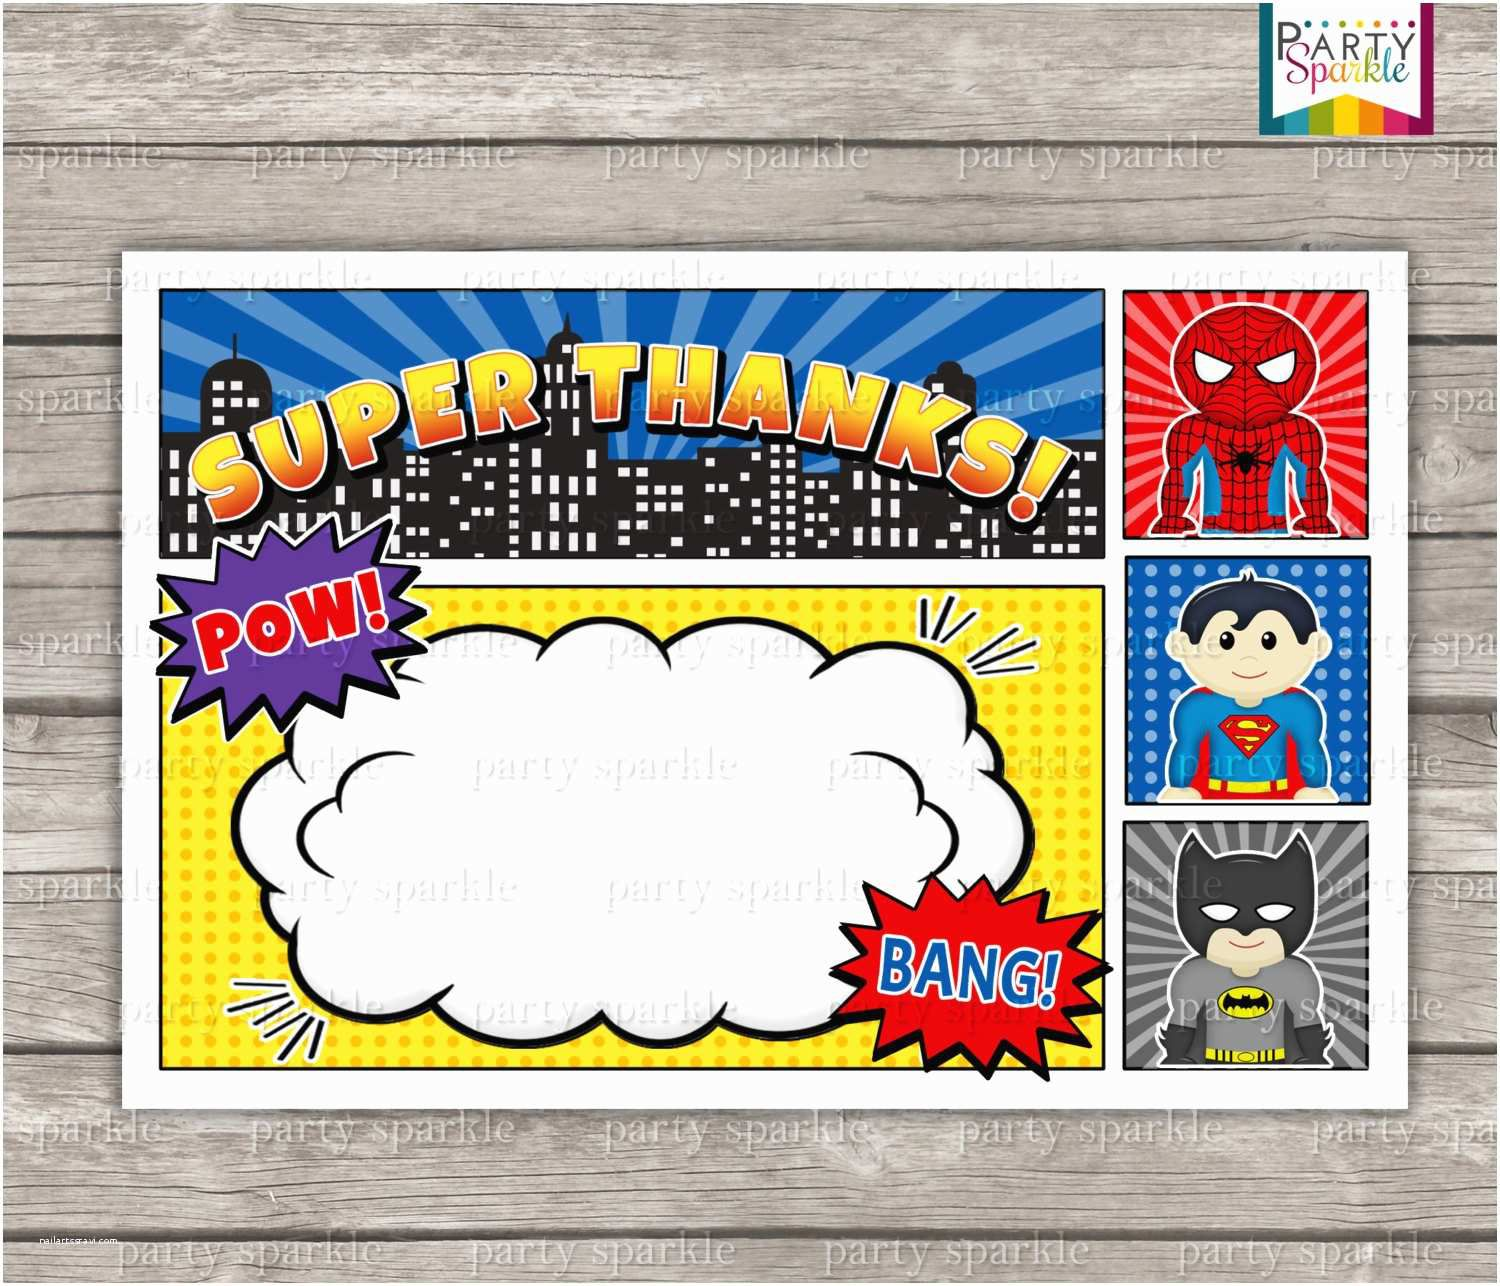 006 Remarkable Superhero Invitation Template Free Picture  Newspaper Party Birthday InviteFull